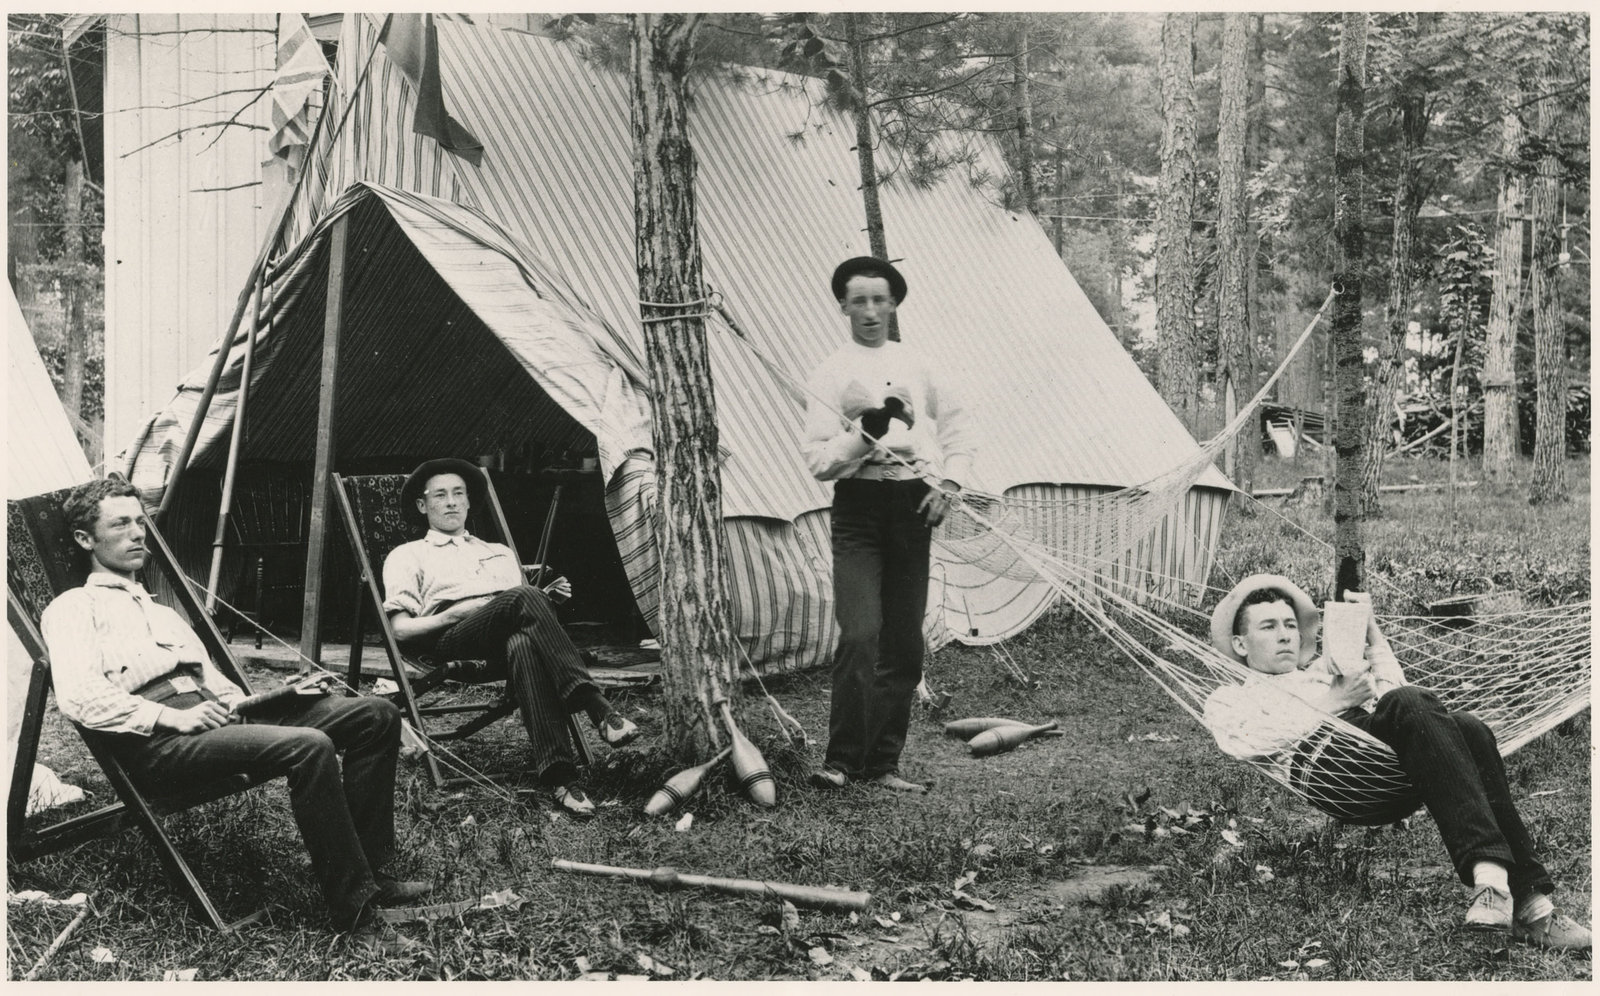 Camping at Grimsby Park